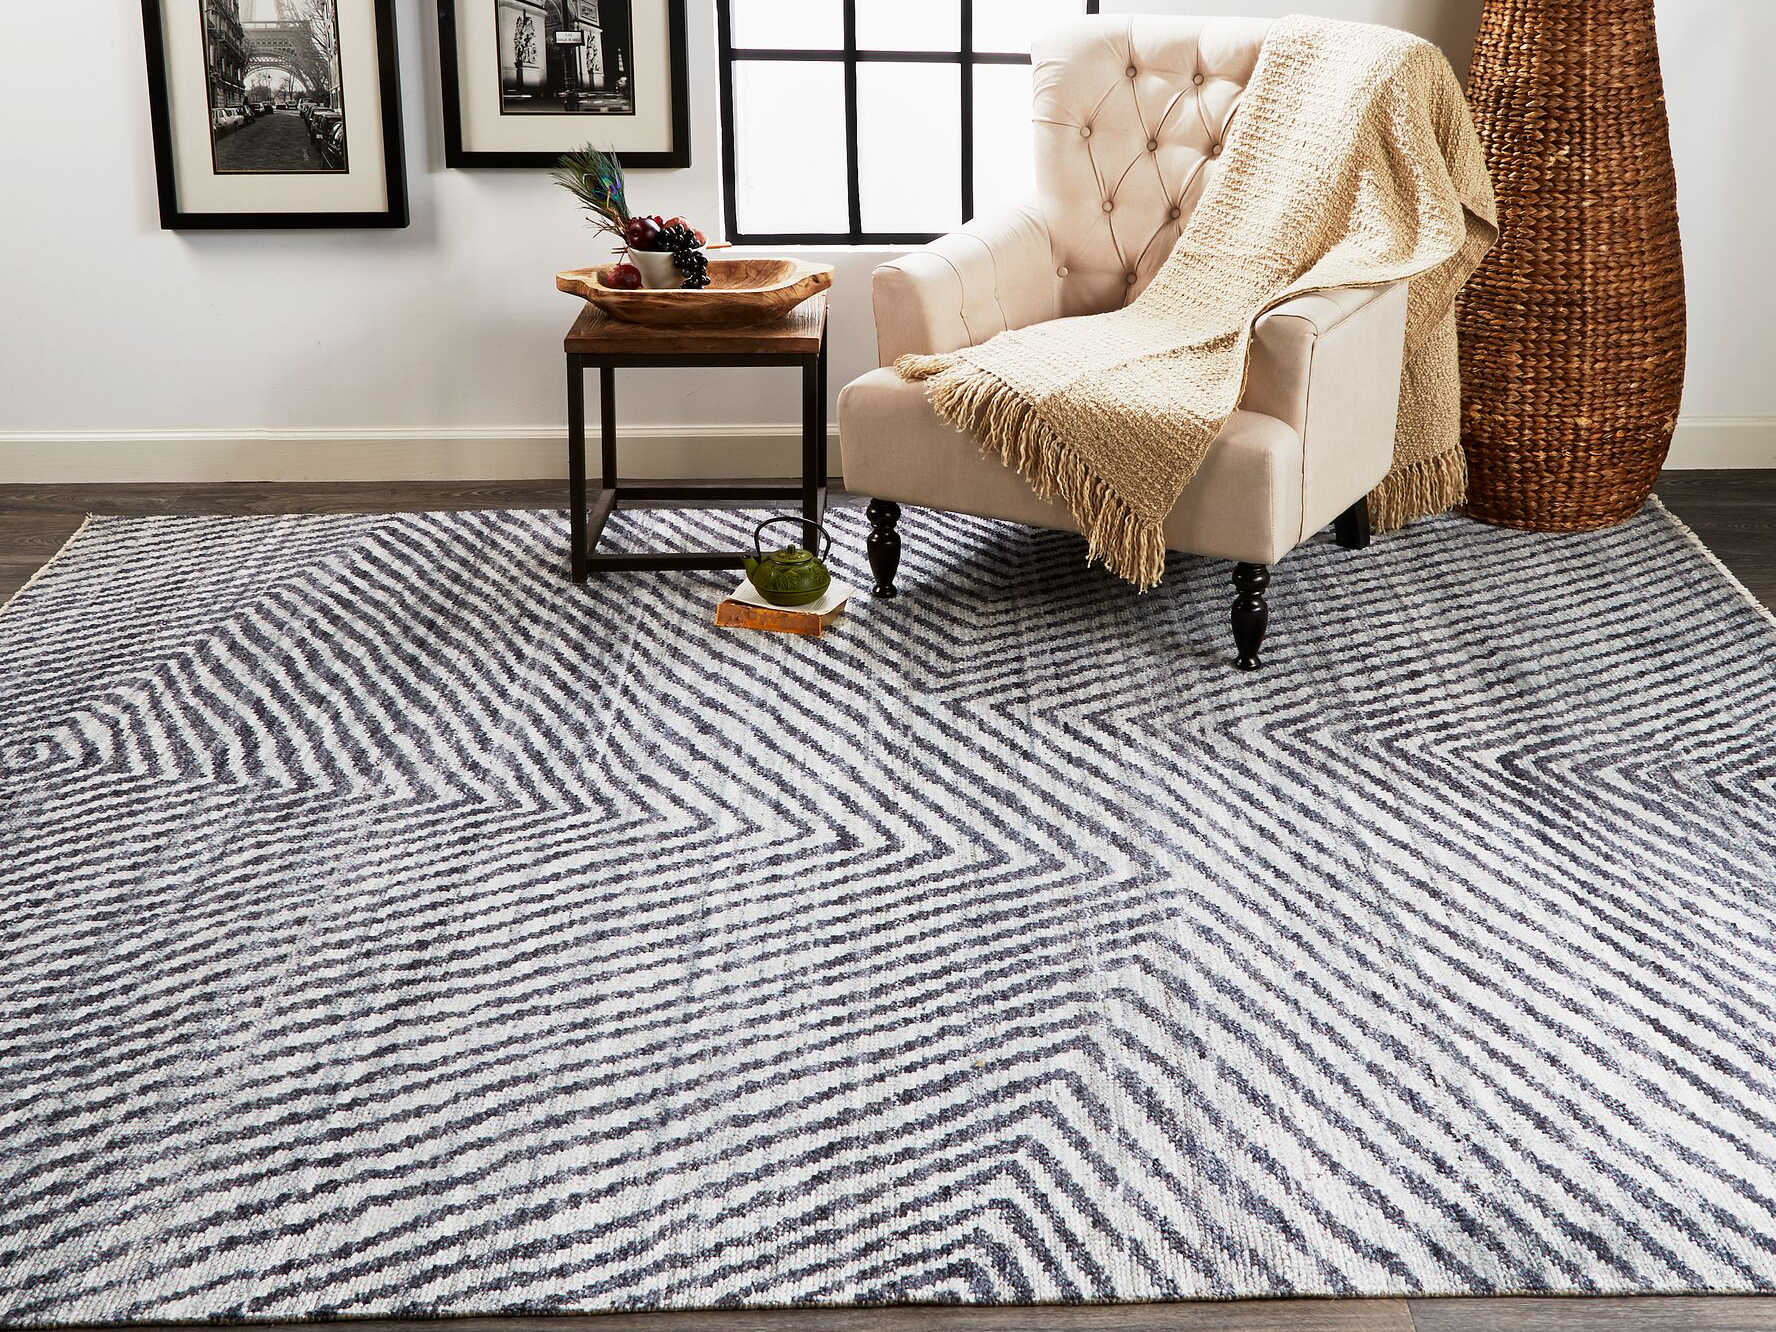 a classy chair on a rug with zigzag pattern